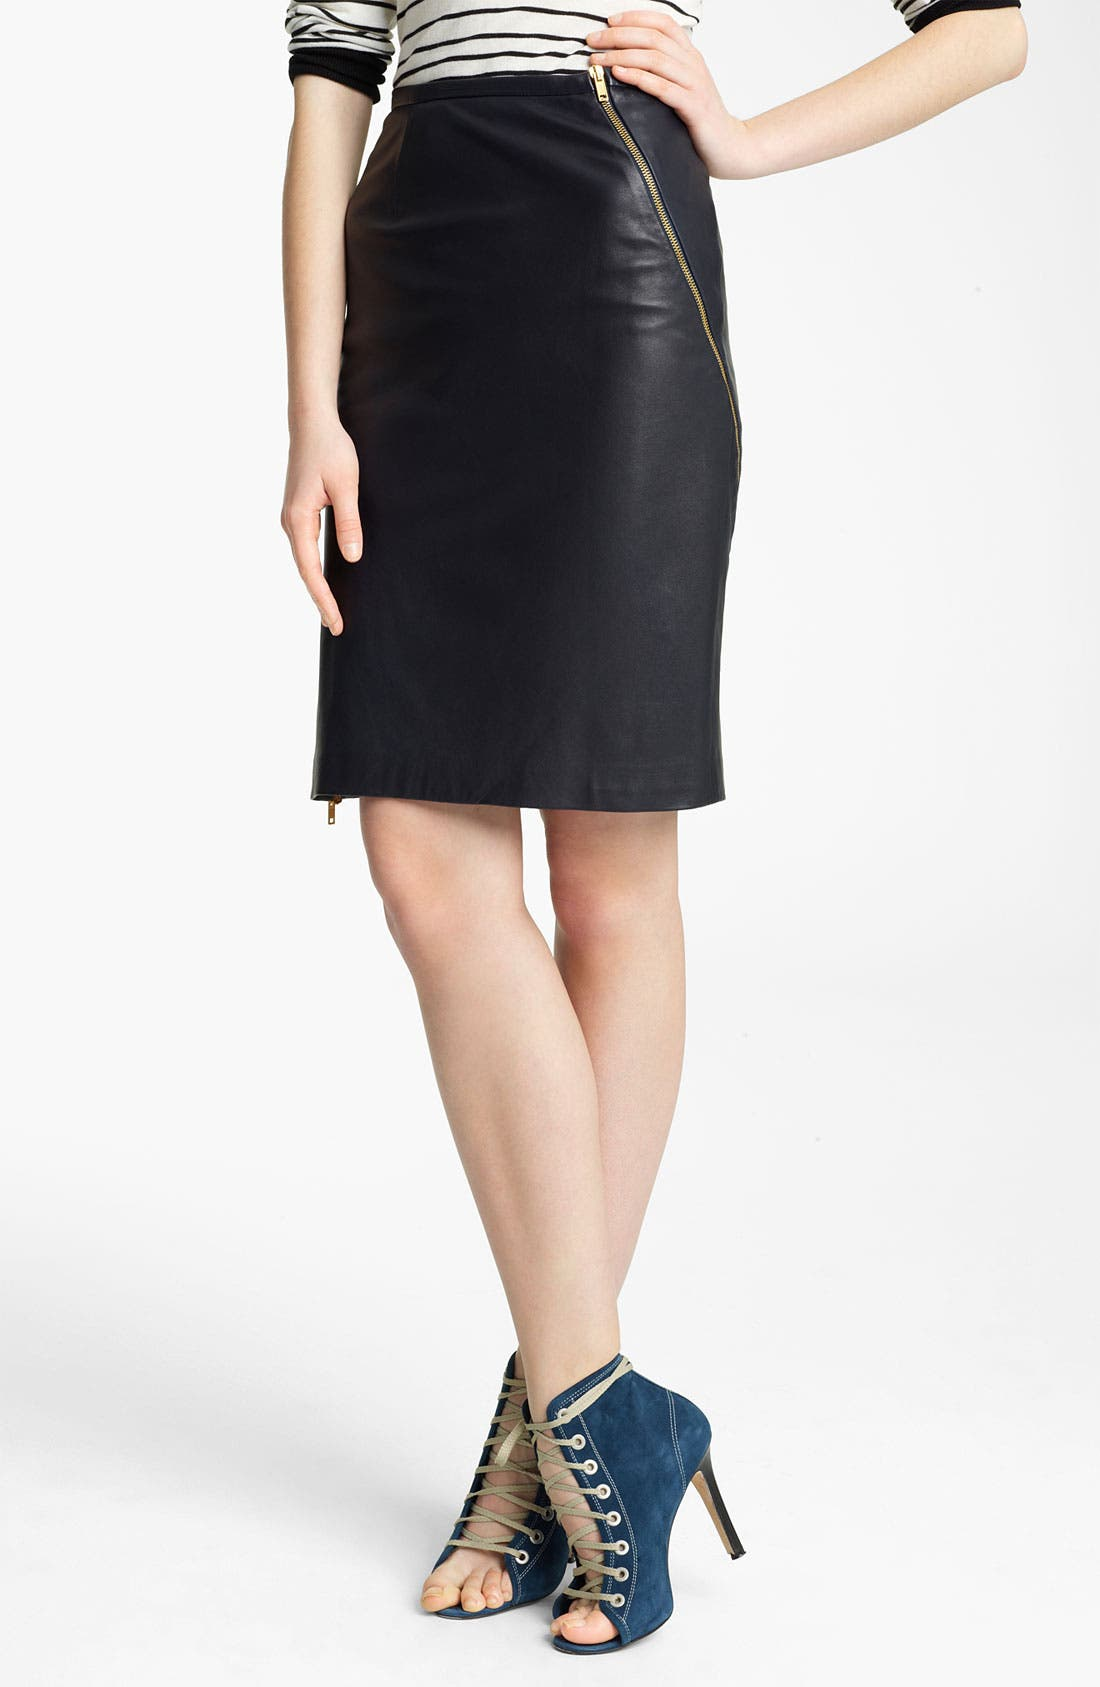 Alternate Image 1 Selected - Band of Outsiders Leather Pencil Skirt